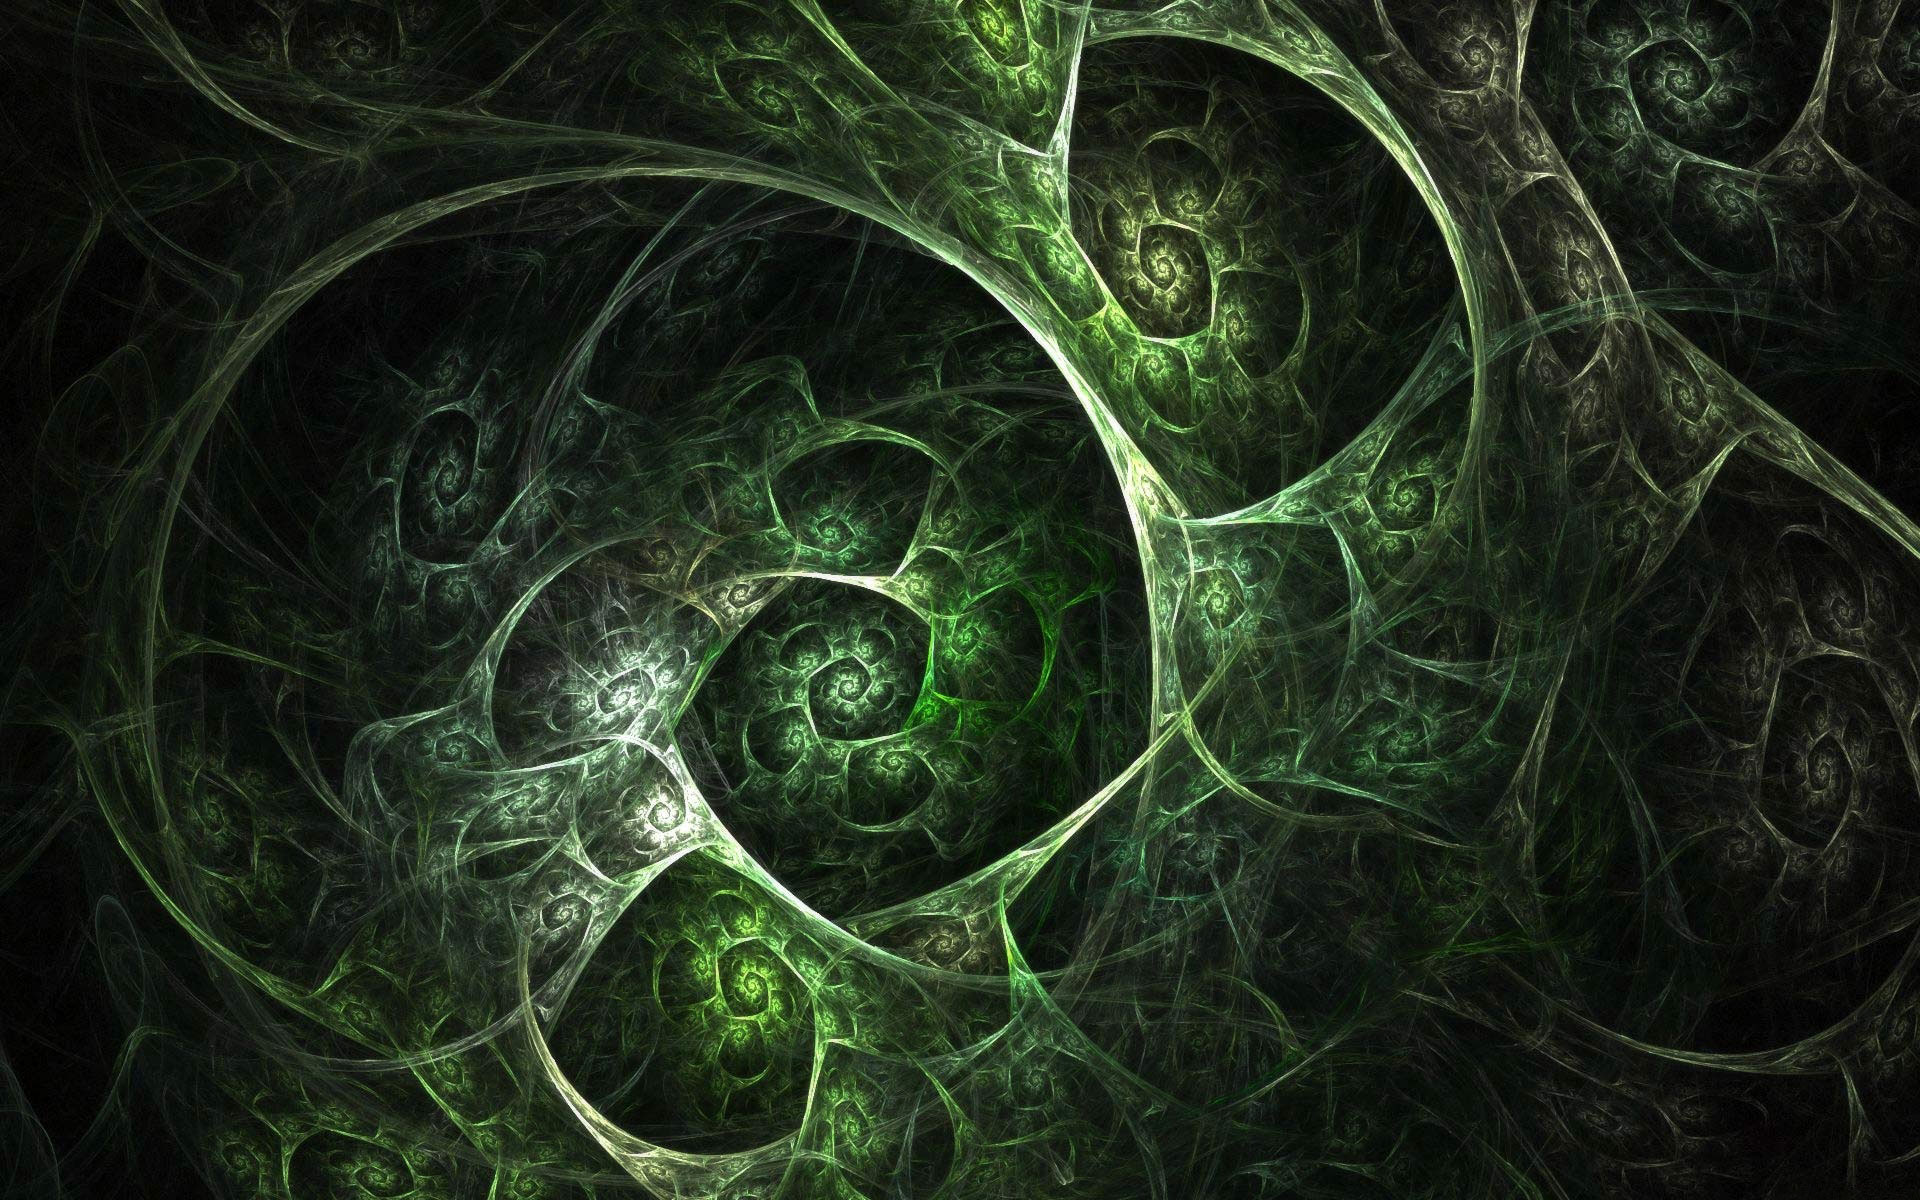 Hd Fractal Wallpapers on